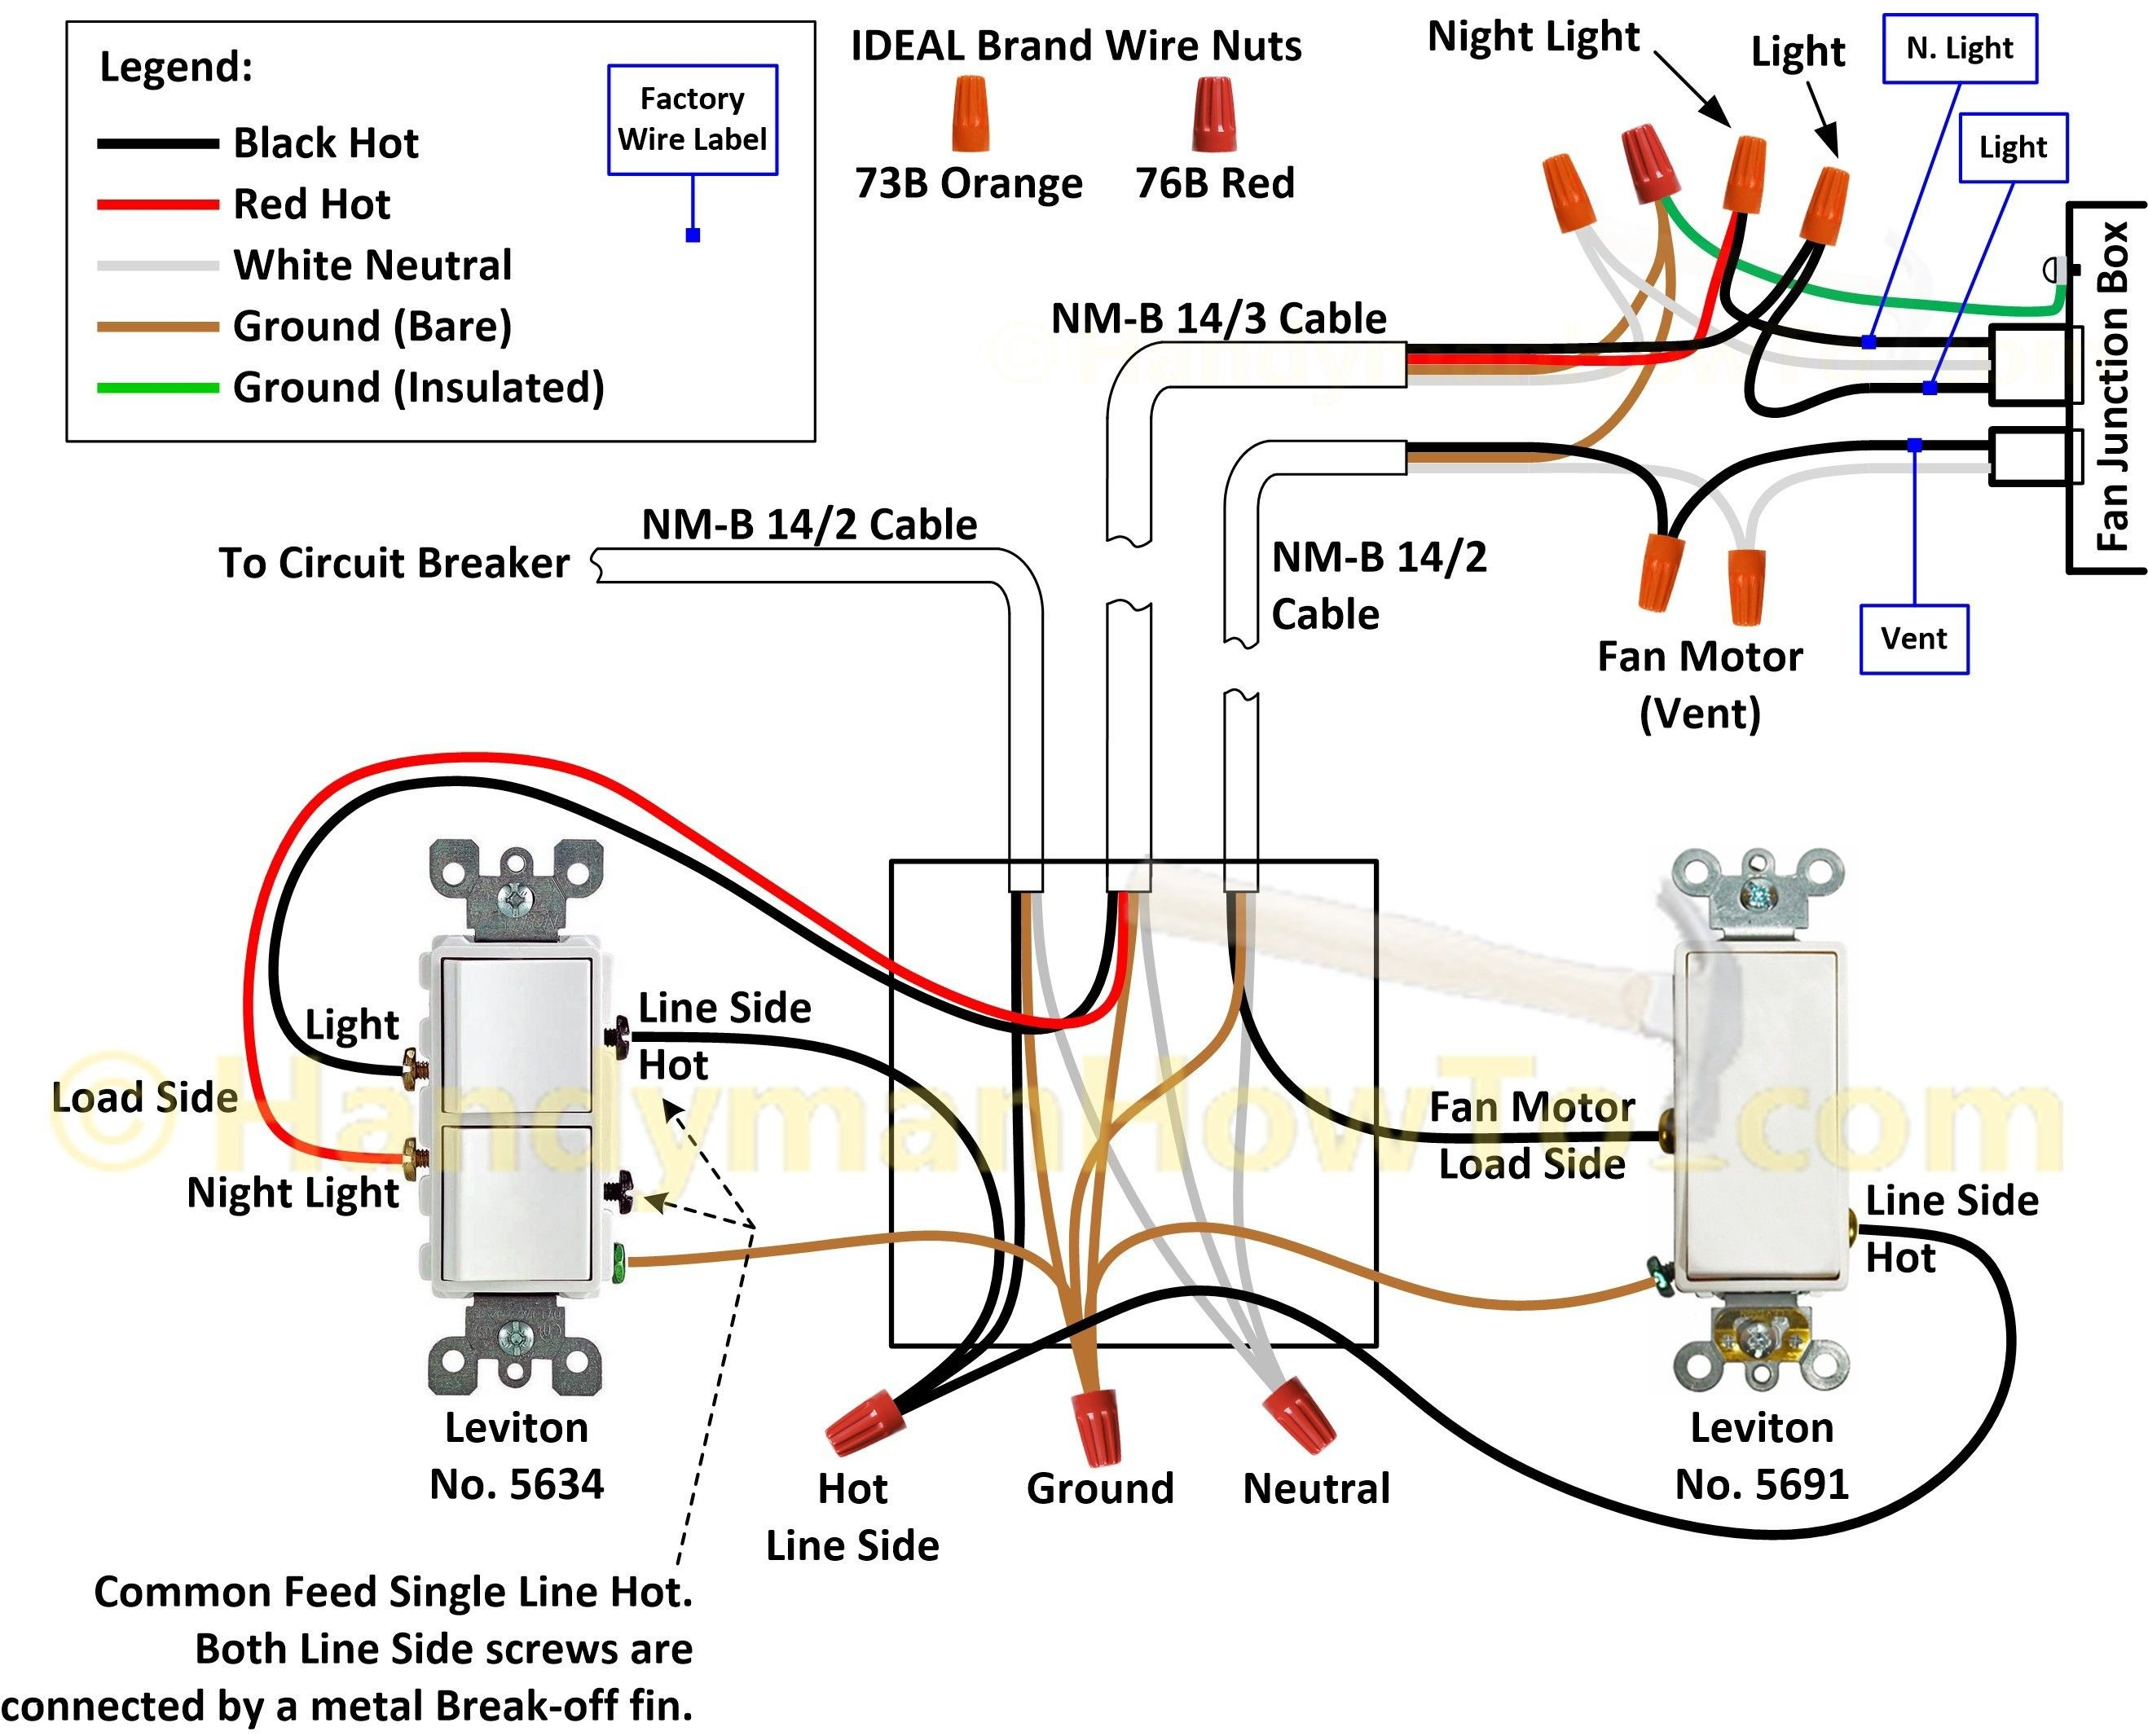 Diagram Wiringdiagram Diagramming Diagramm Visuals Visualisation Graphical Light Switch Wiring Fan Light Switch Bathroom Fan Light